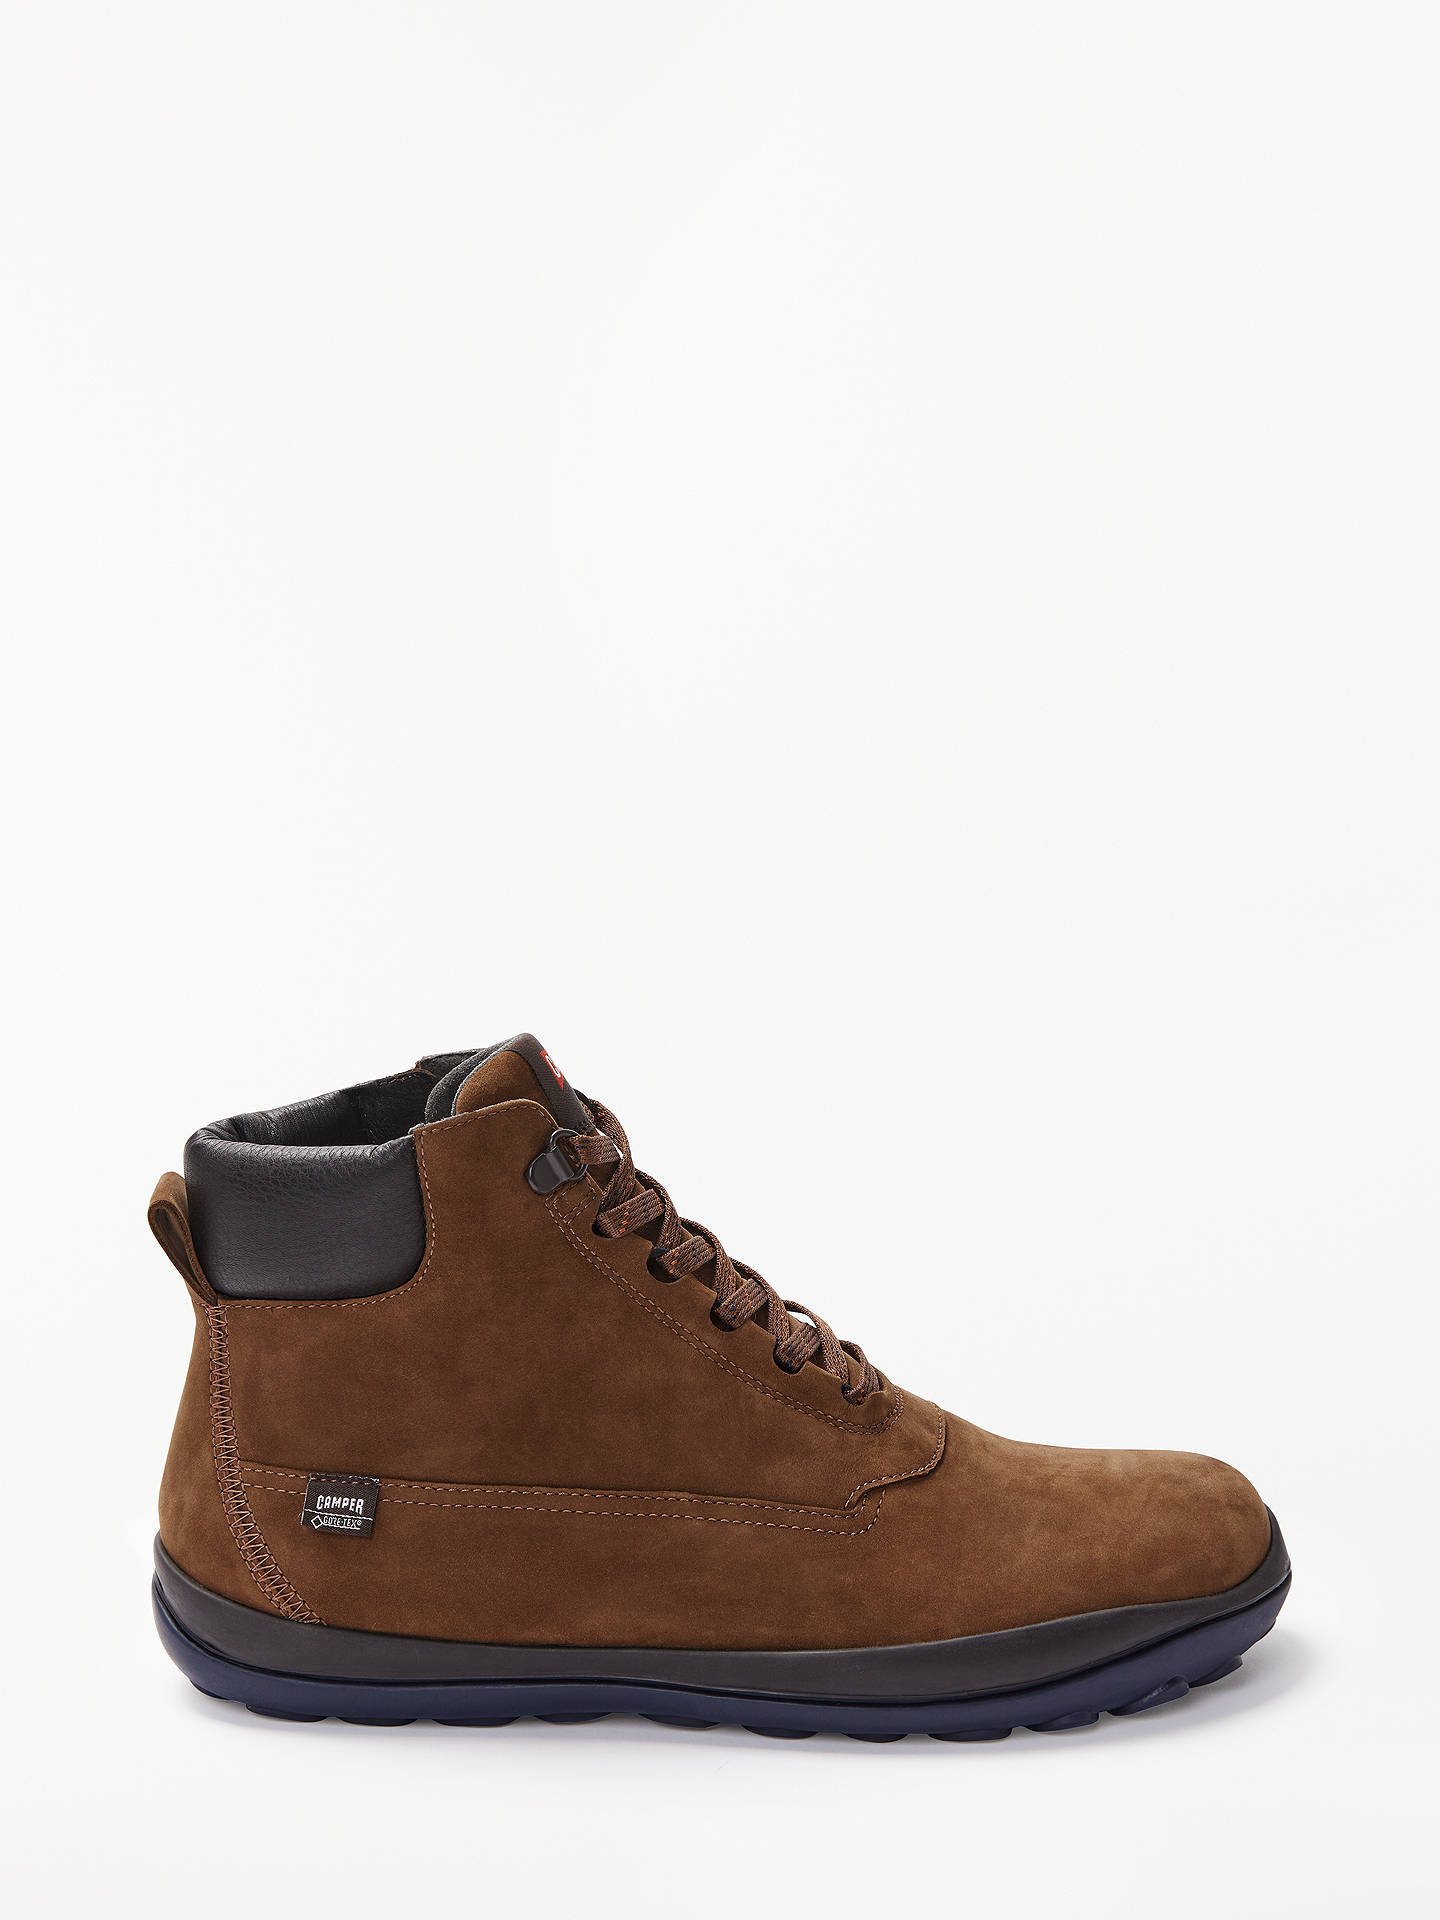 BuyCamper Peu Pista GORE-TEX Boots, Wheat, 8 Online at johnlewis.com